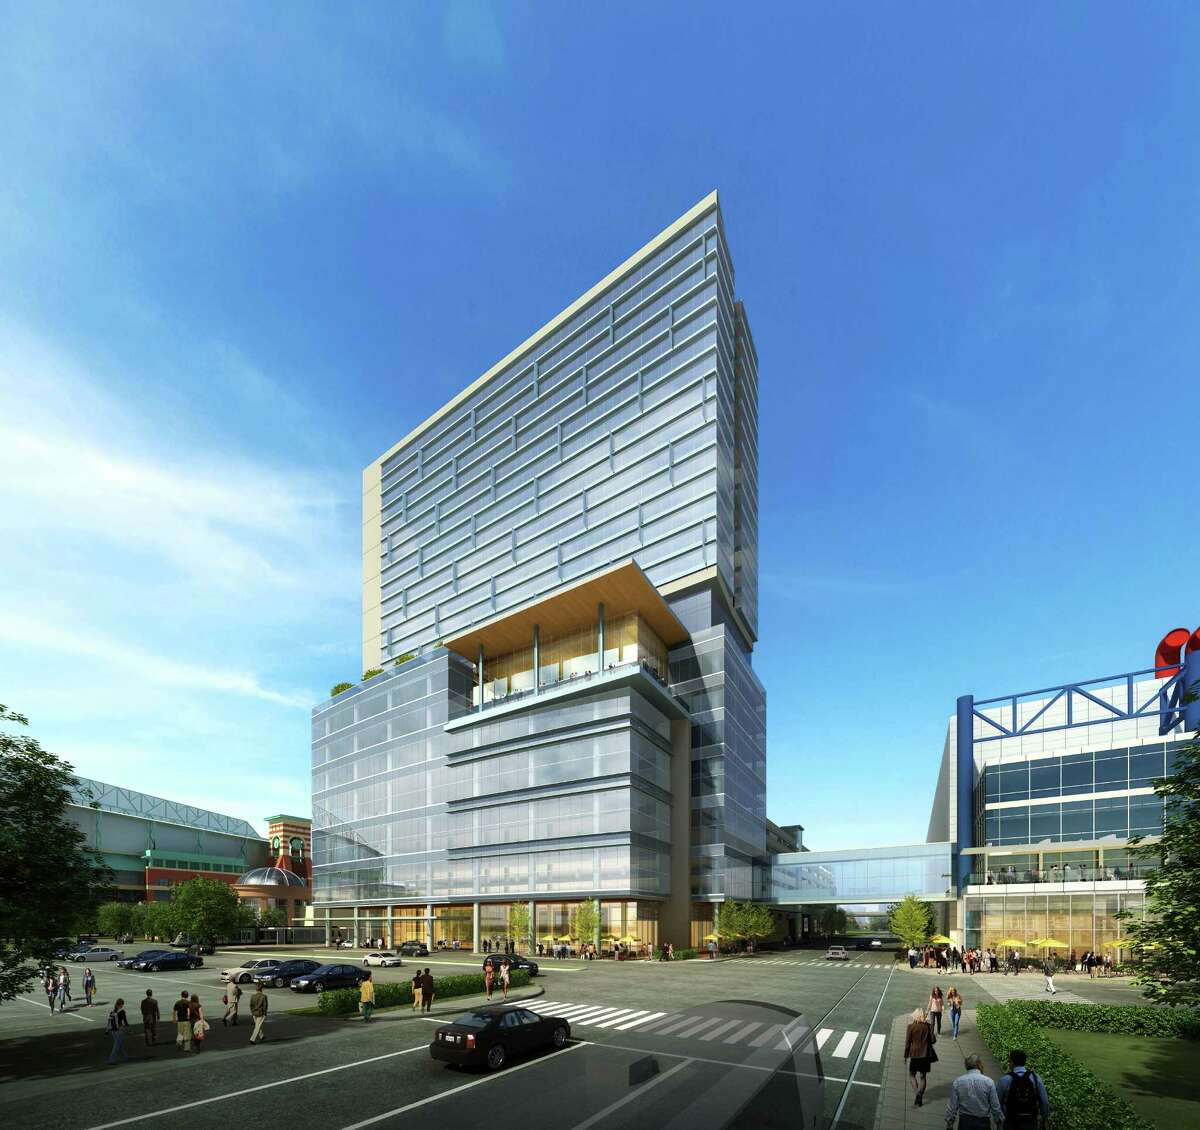 Houston First is sending out proposals to developers for a hotel that would be built on top of the recently announced Greater Houston Partnership Building and parking garage that will be north of the George R. Brown Convention Center.